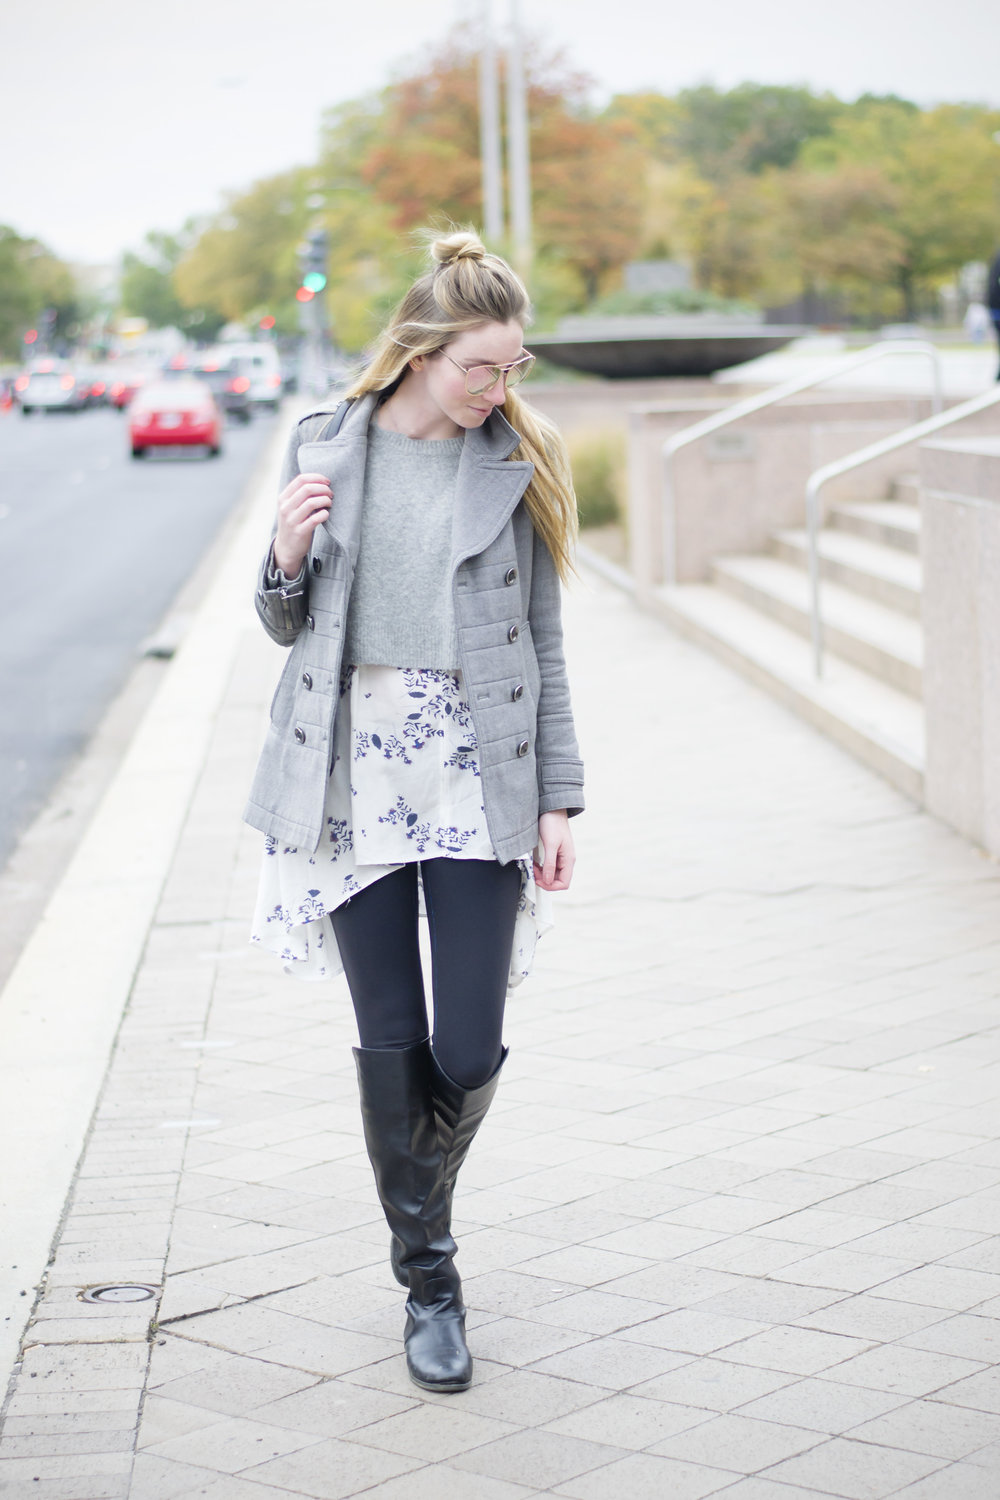 Tall Boots Outfit (Chic Now)